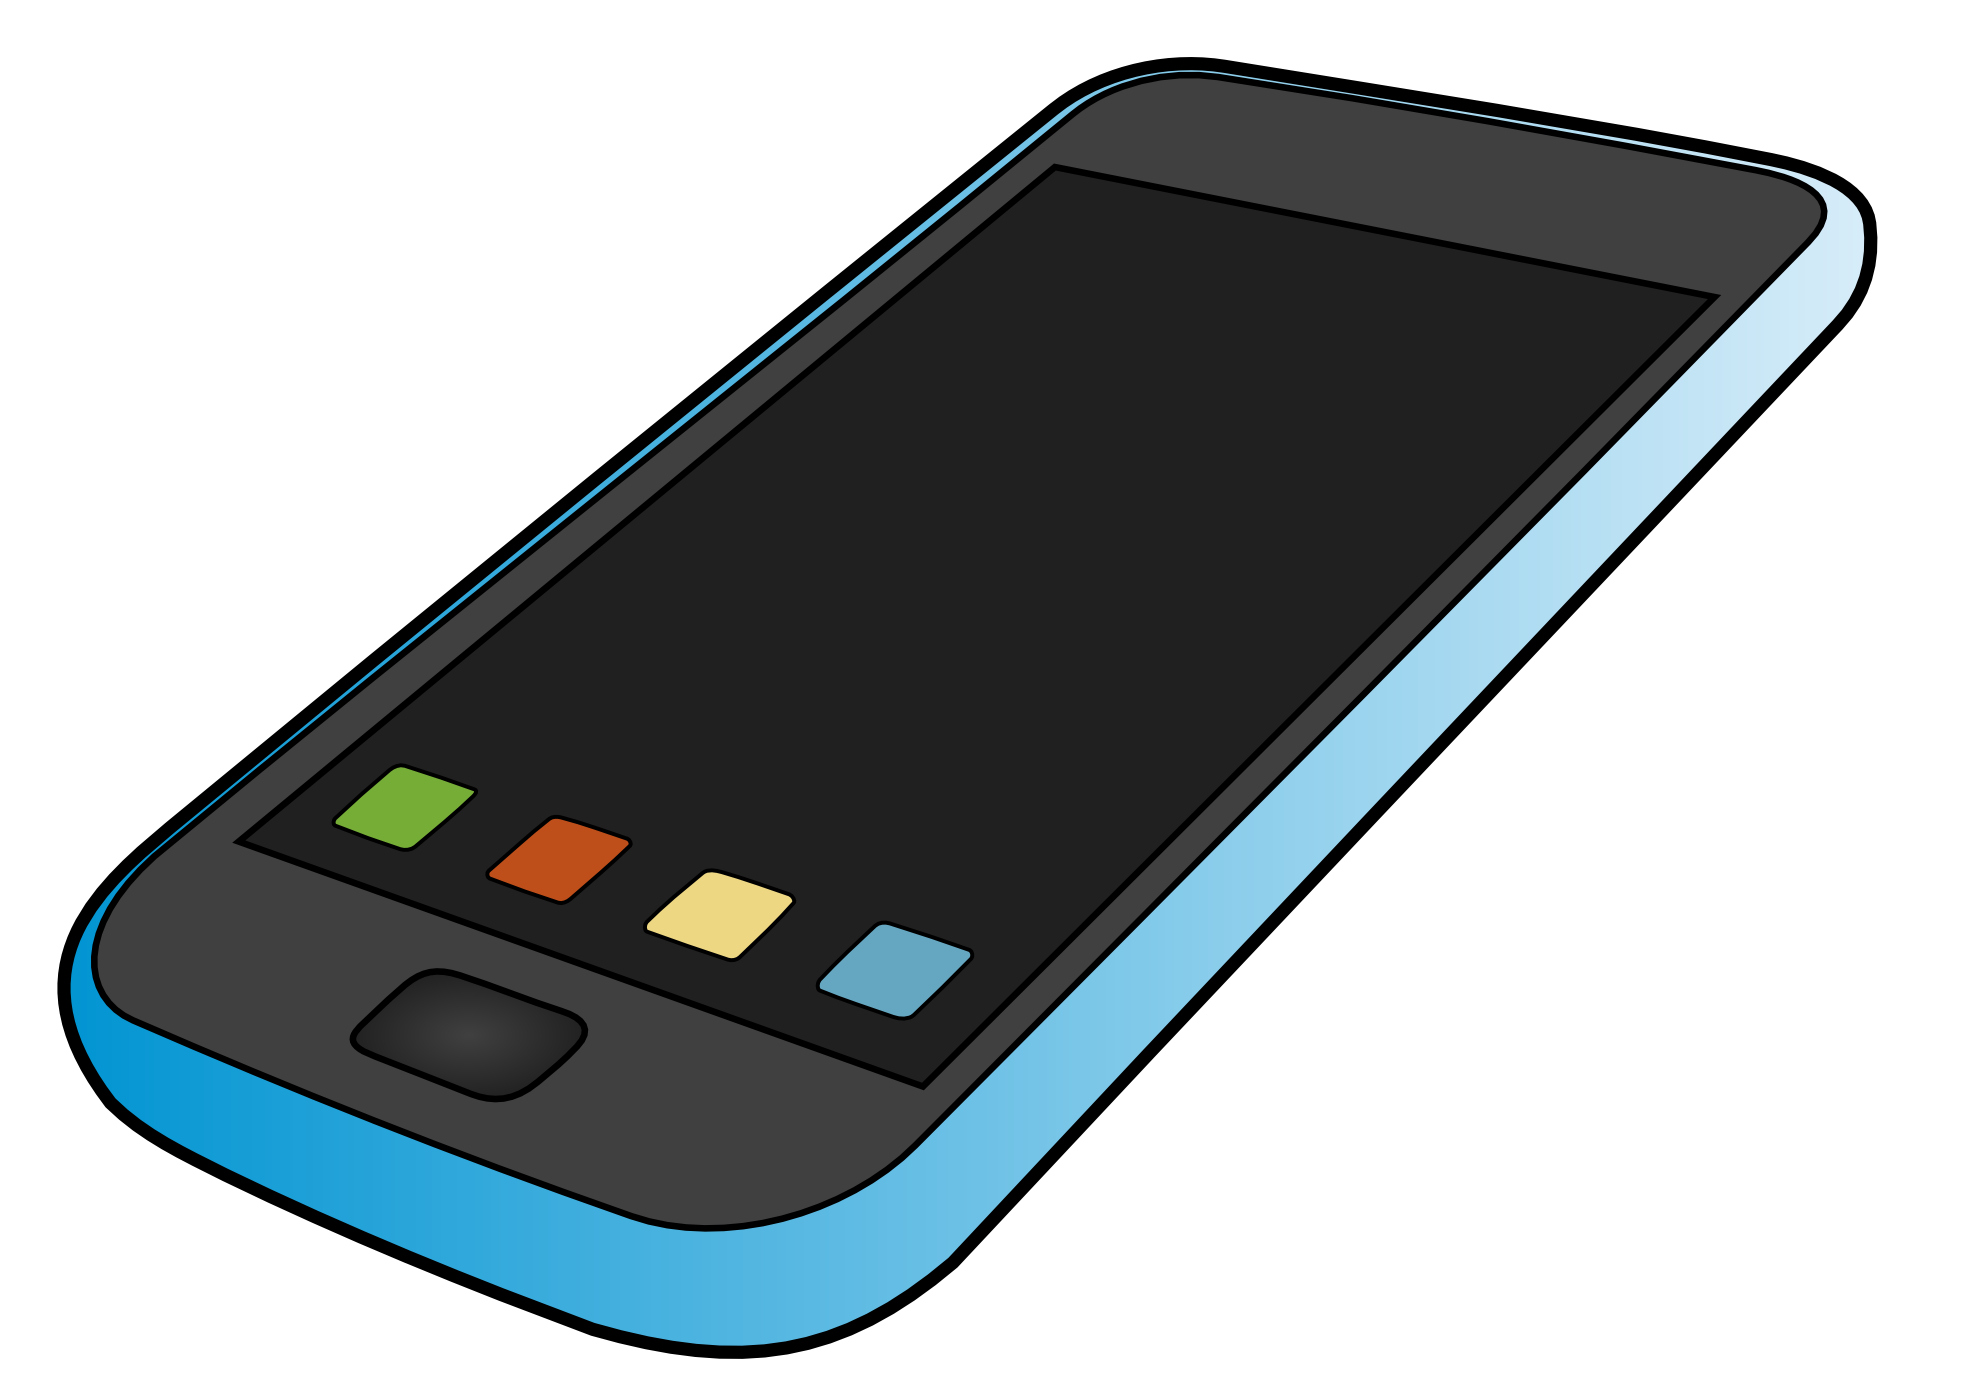 Cellphone png clipart. Collection of cell